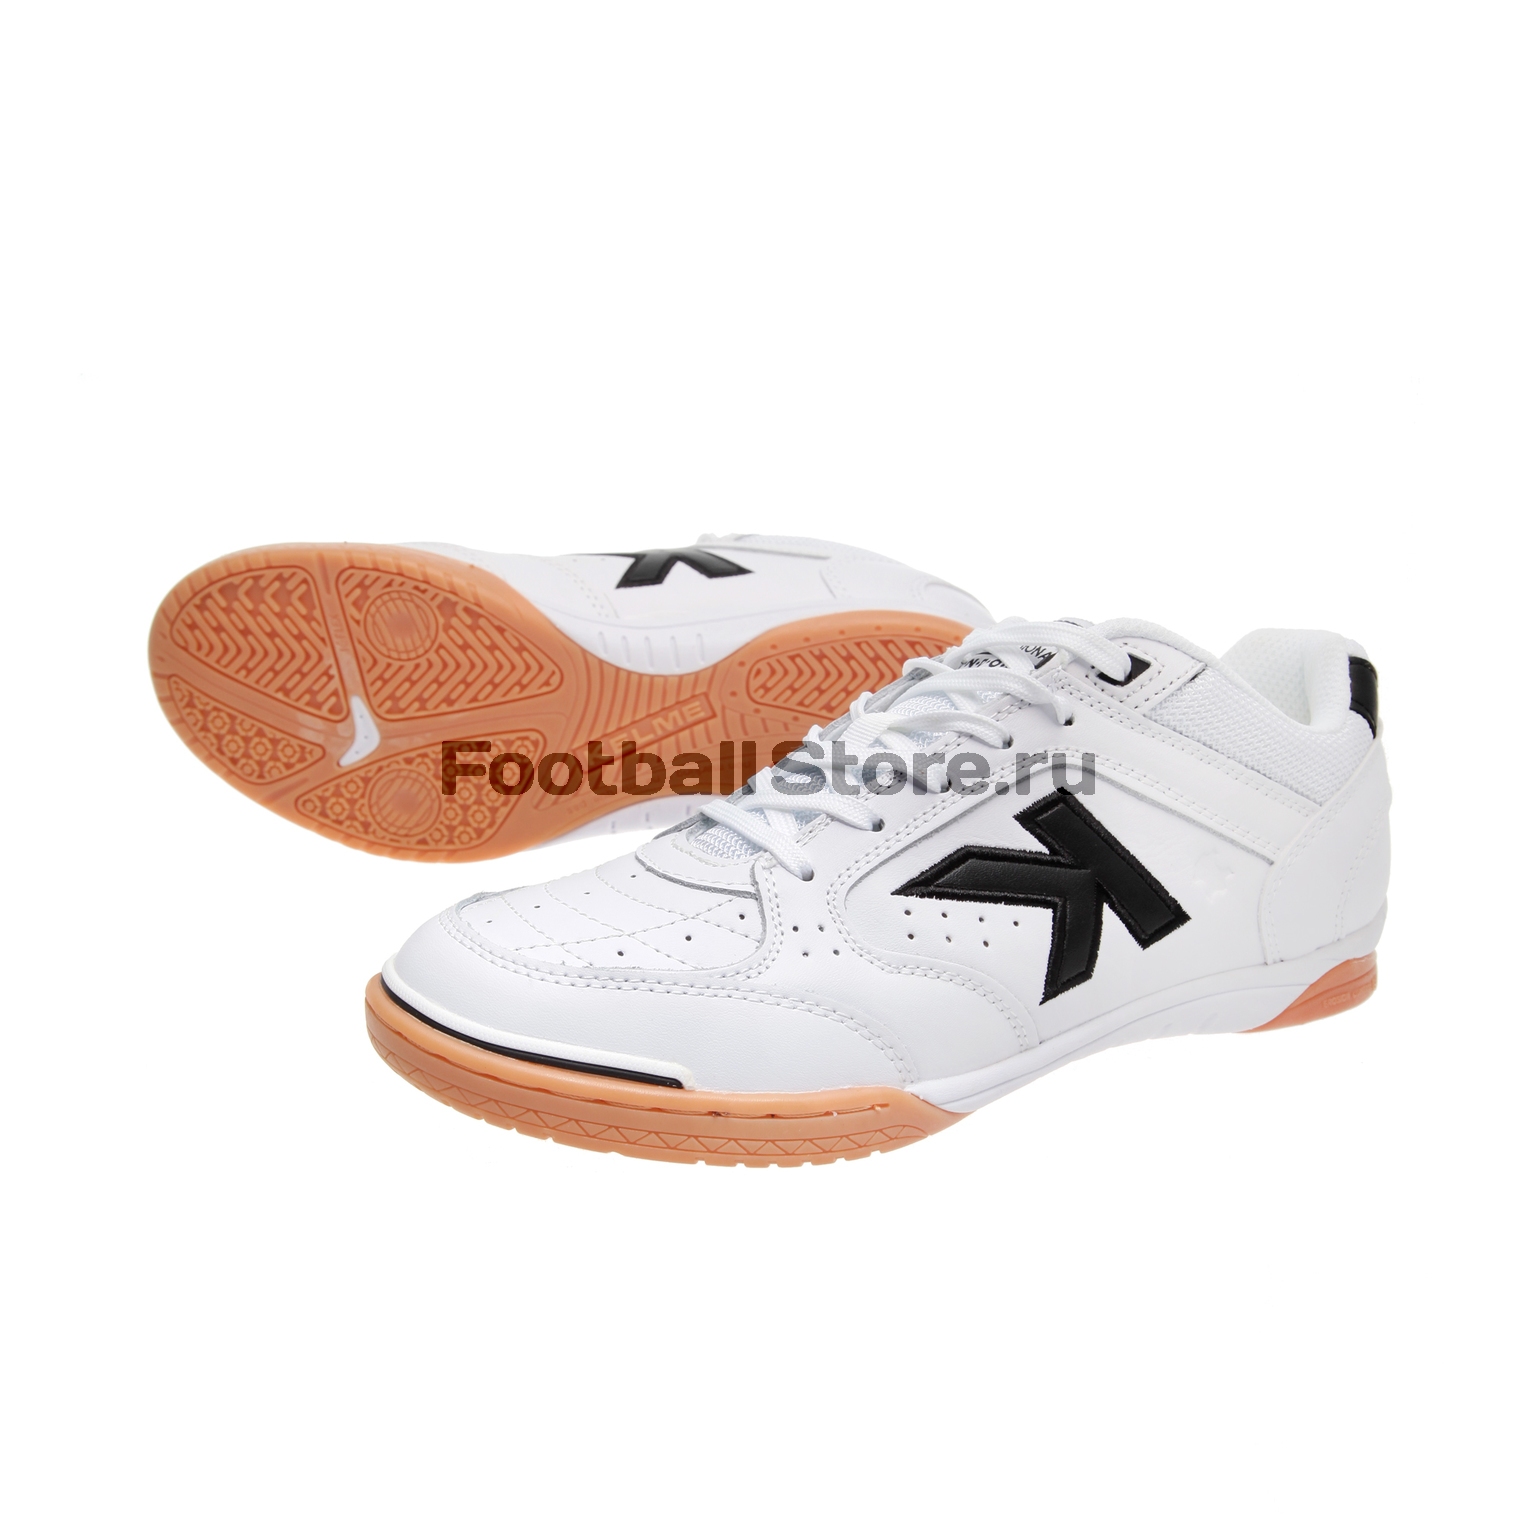 Обувь для зала Kelme Precision One 55813-061 обувь для зала kelme обувь для зала kelme subito 5 0 55803 026